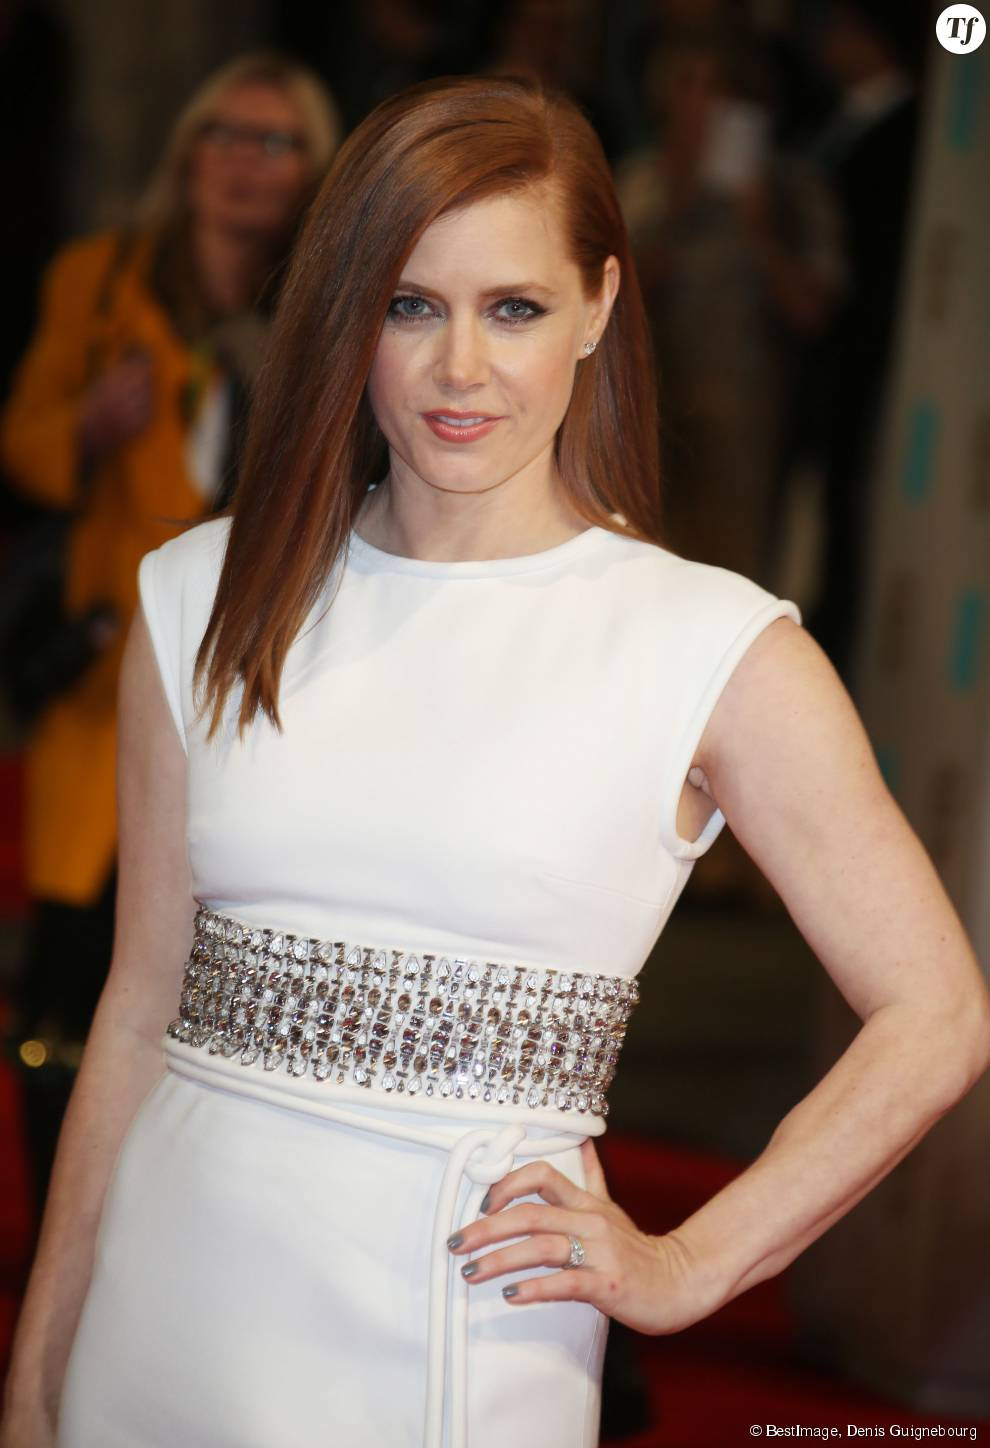 Le roux chaud d'Amy Adams